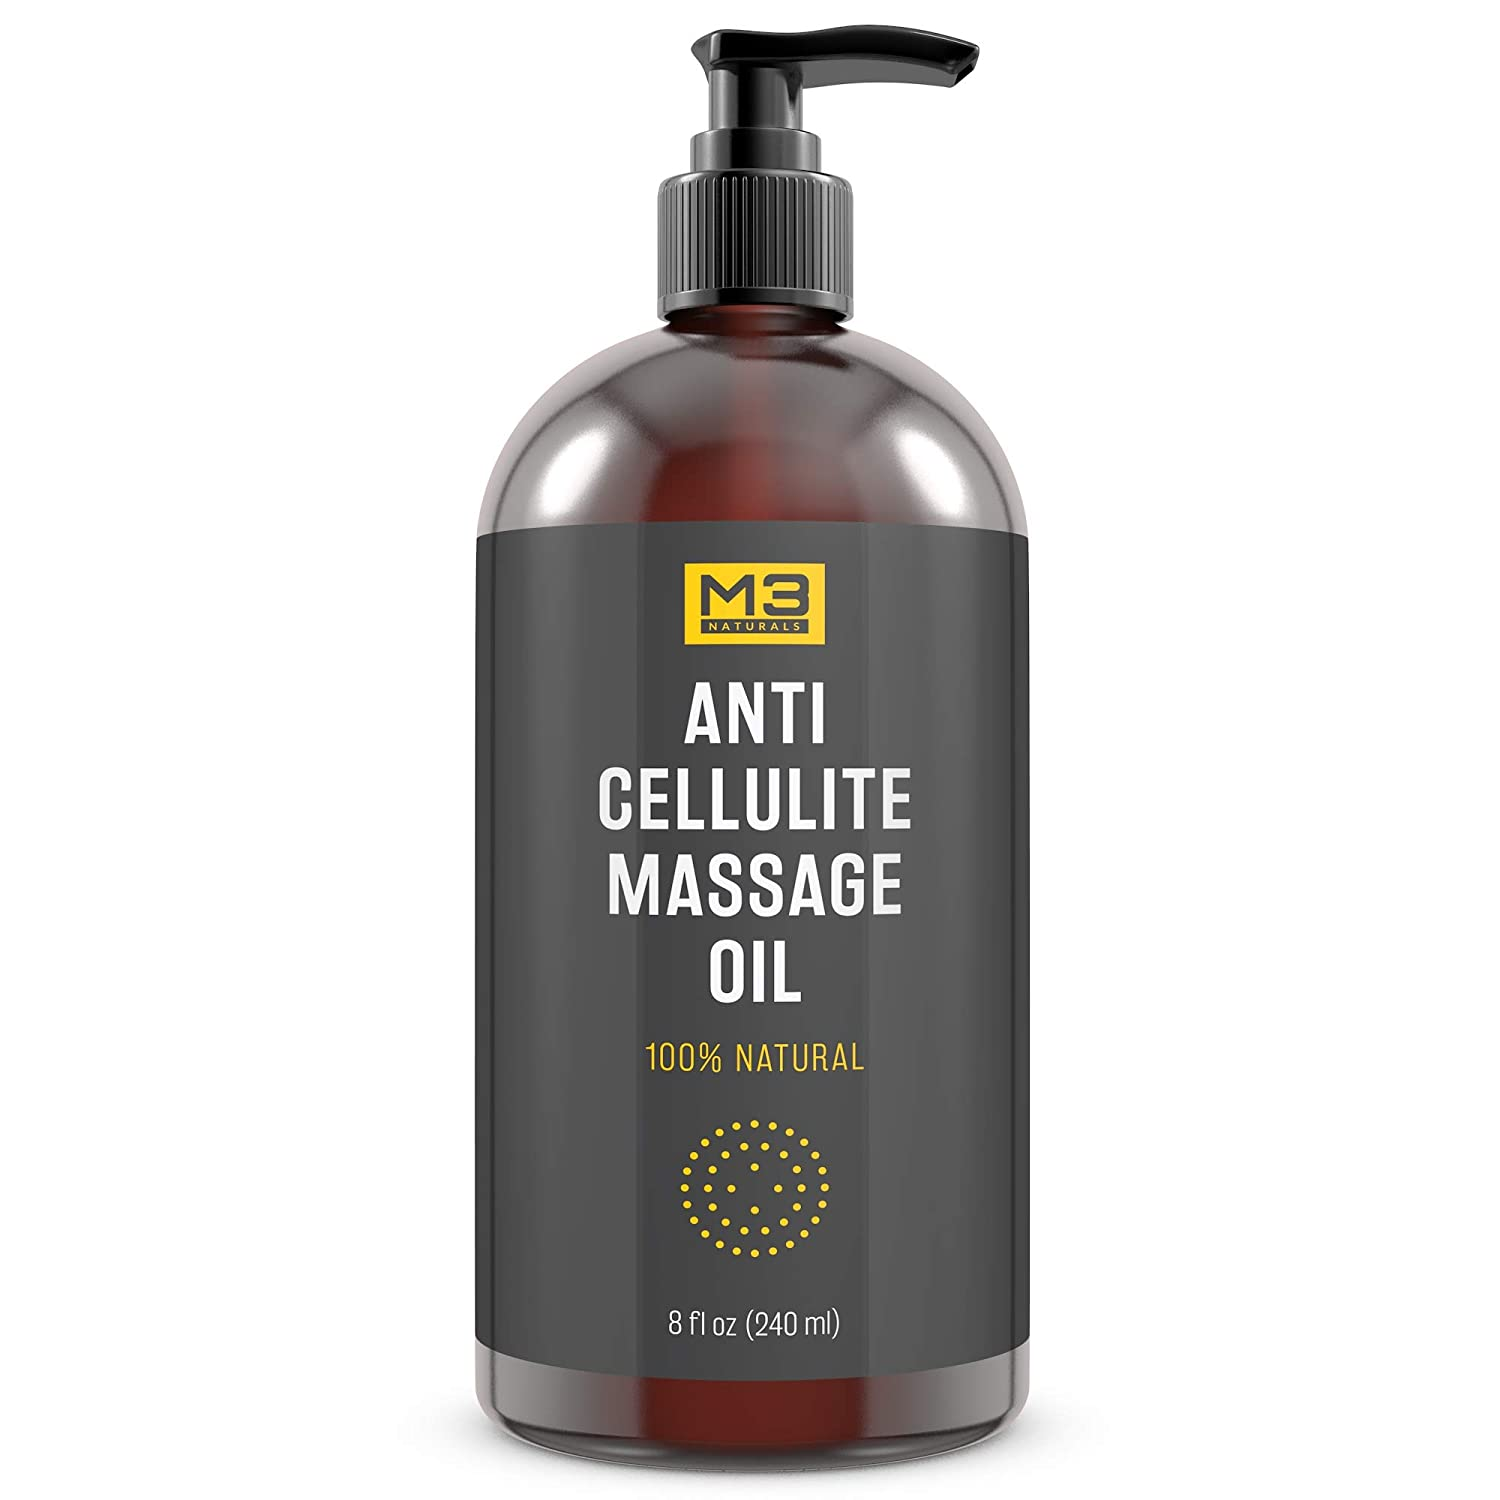 Premium Anti Cellulite Treatment Massage Oil - All Natural Ingredients – Penetrates Skin 6X Deeper Than Cellulite Cream - Targets Unwanted Fat Tissues & Improves Skin Firmness M3 Naturals